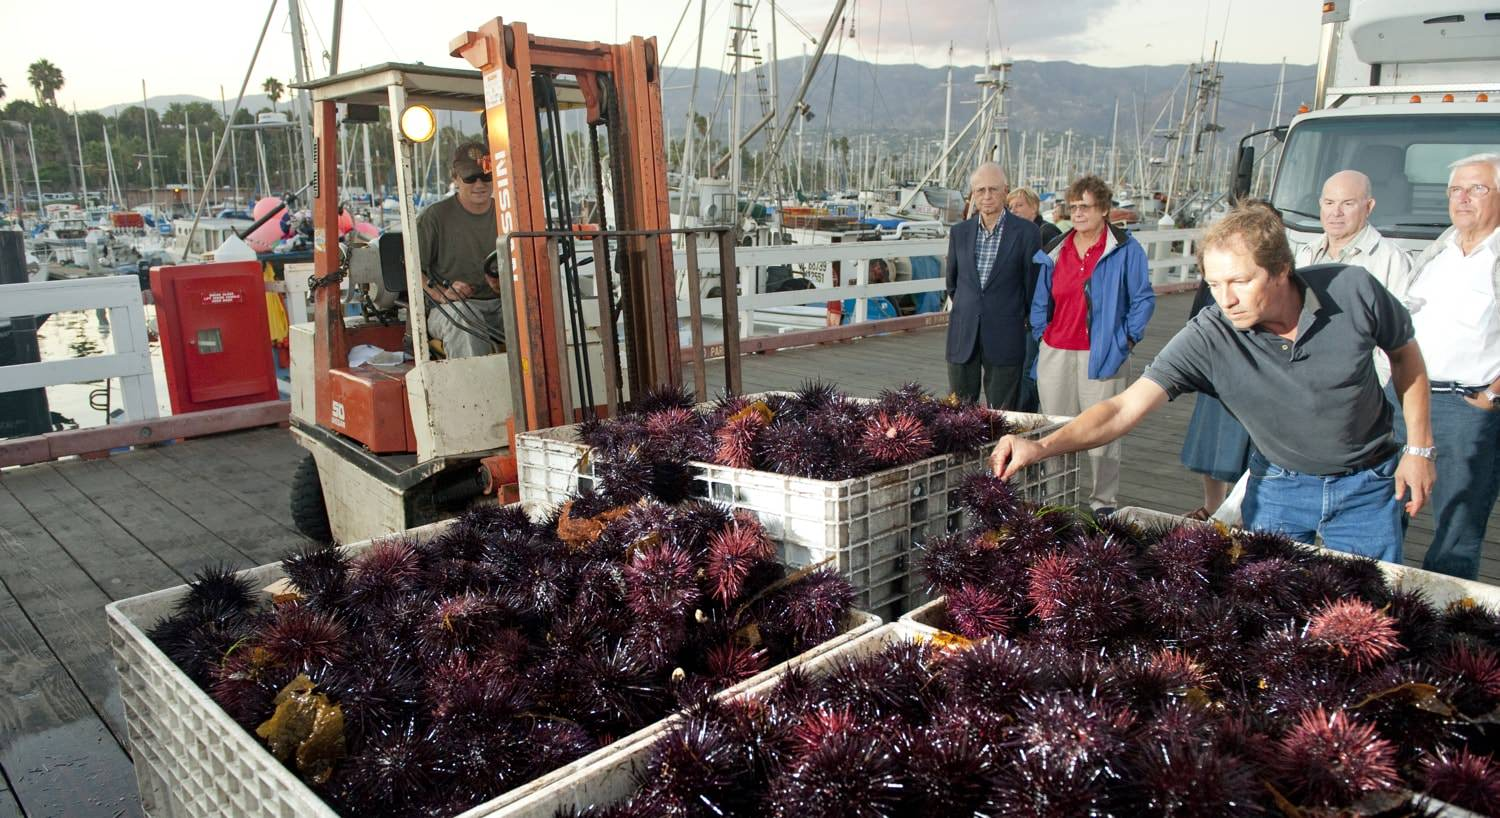 People watching men gather crates of fresh sea urchins